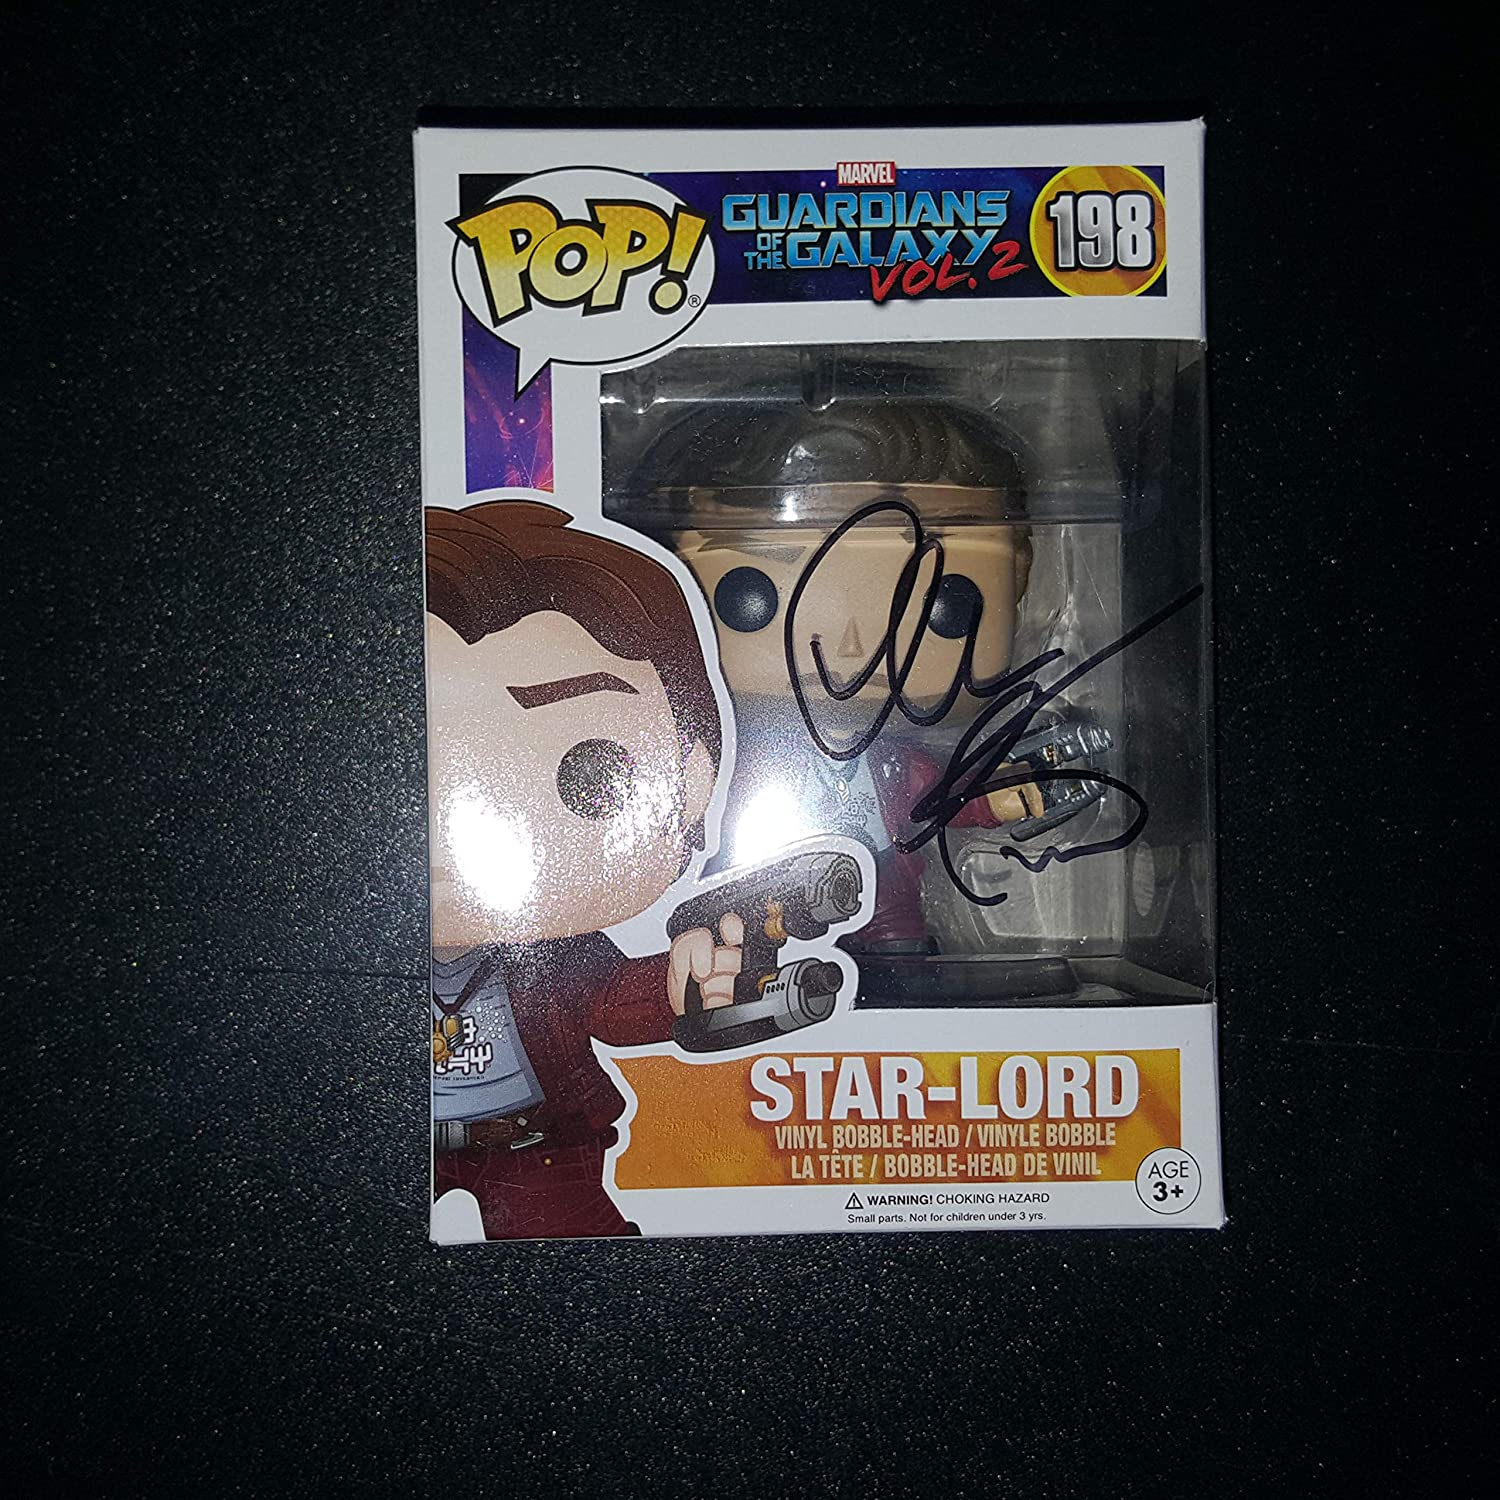 CHRIS PRATT - Autographed Signed STAR LORD FUNKO POP 198 Vinyl Figure GUARDIANS OF THE GALAXY VOL 2 COA